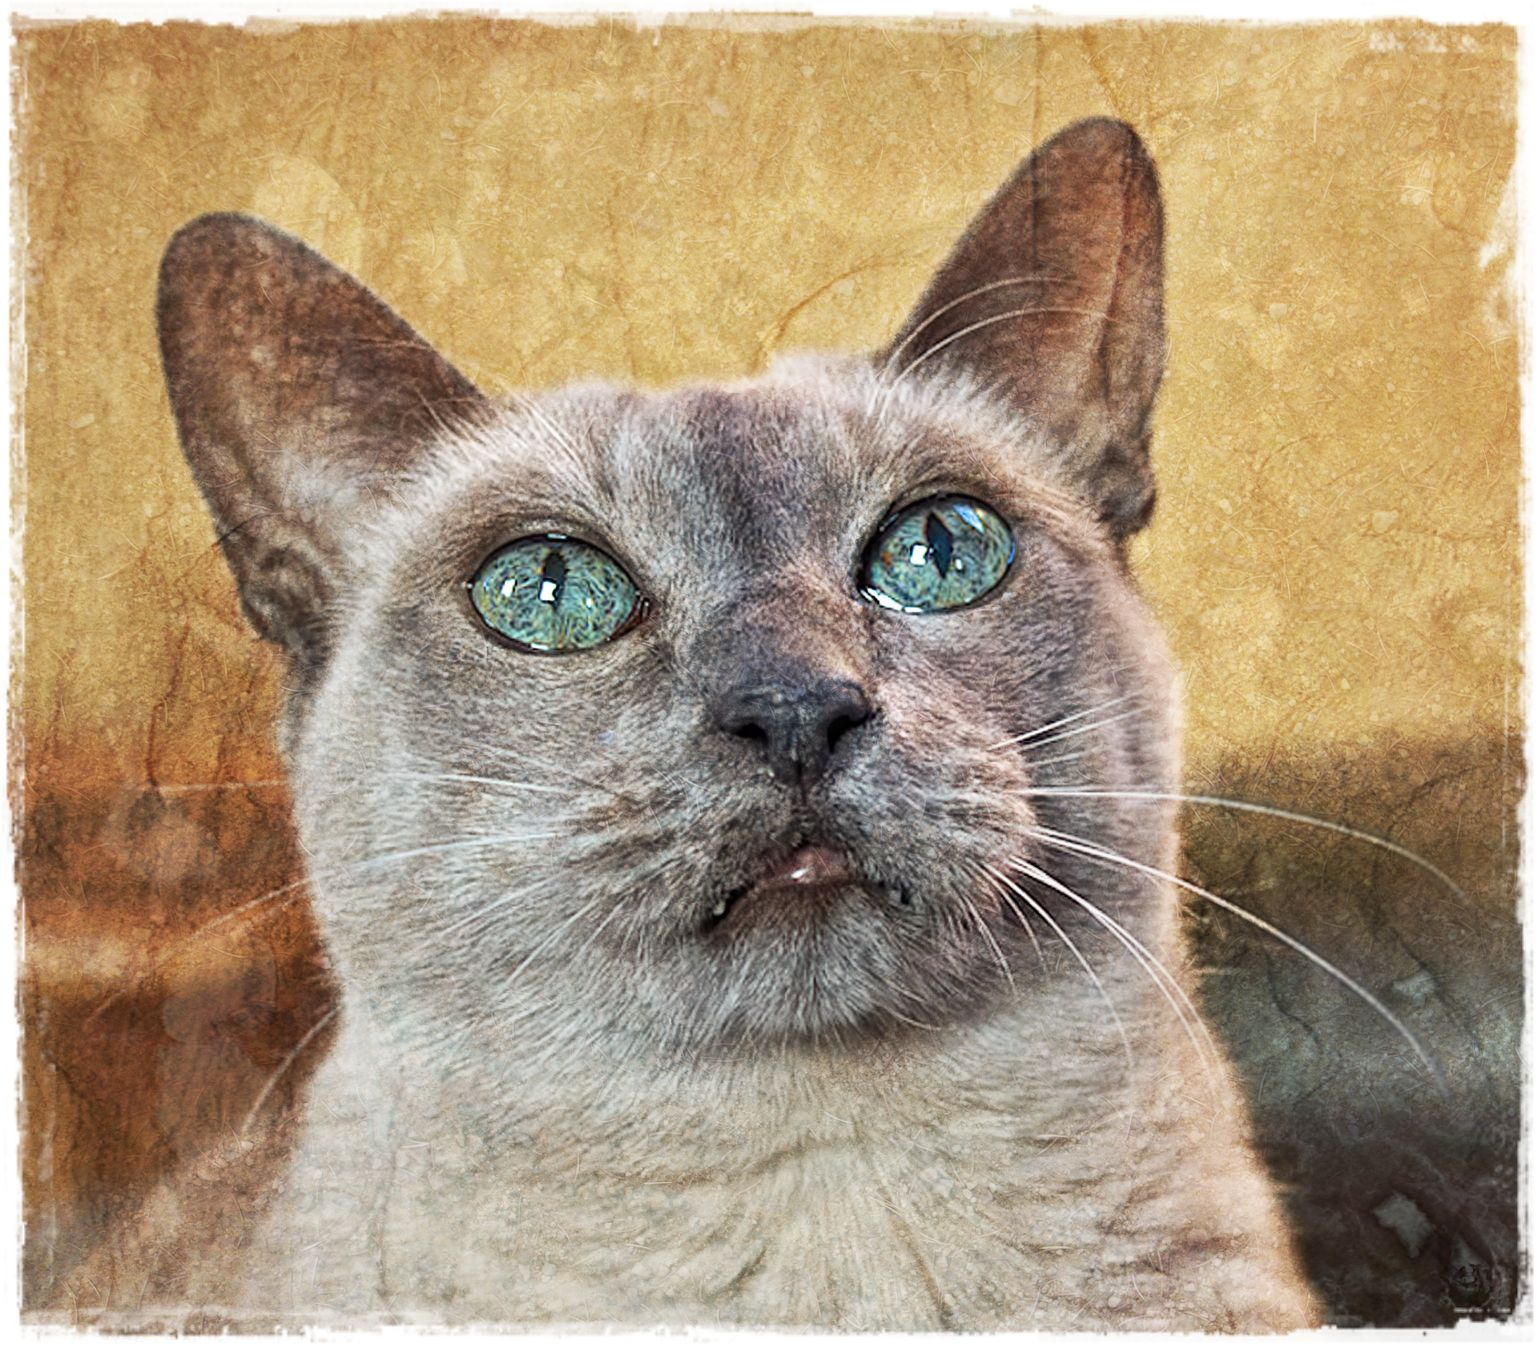 An image of a Tonkinese cat, layered with textures